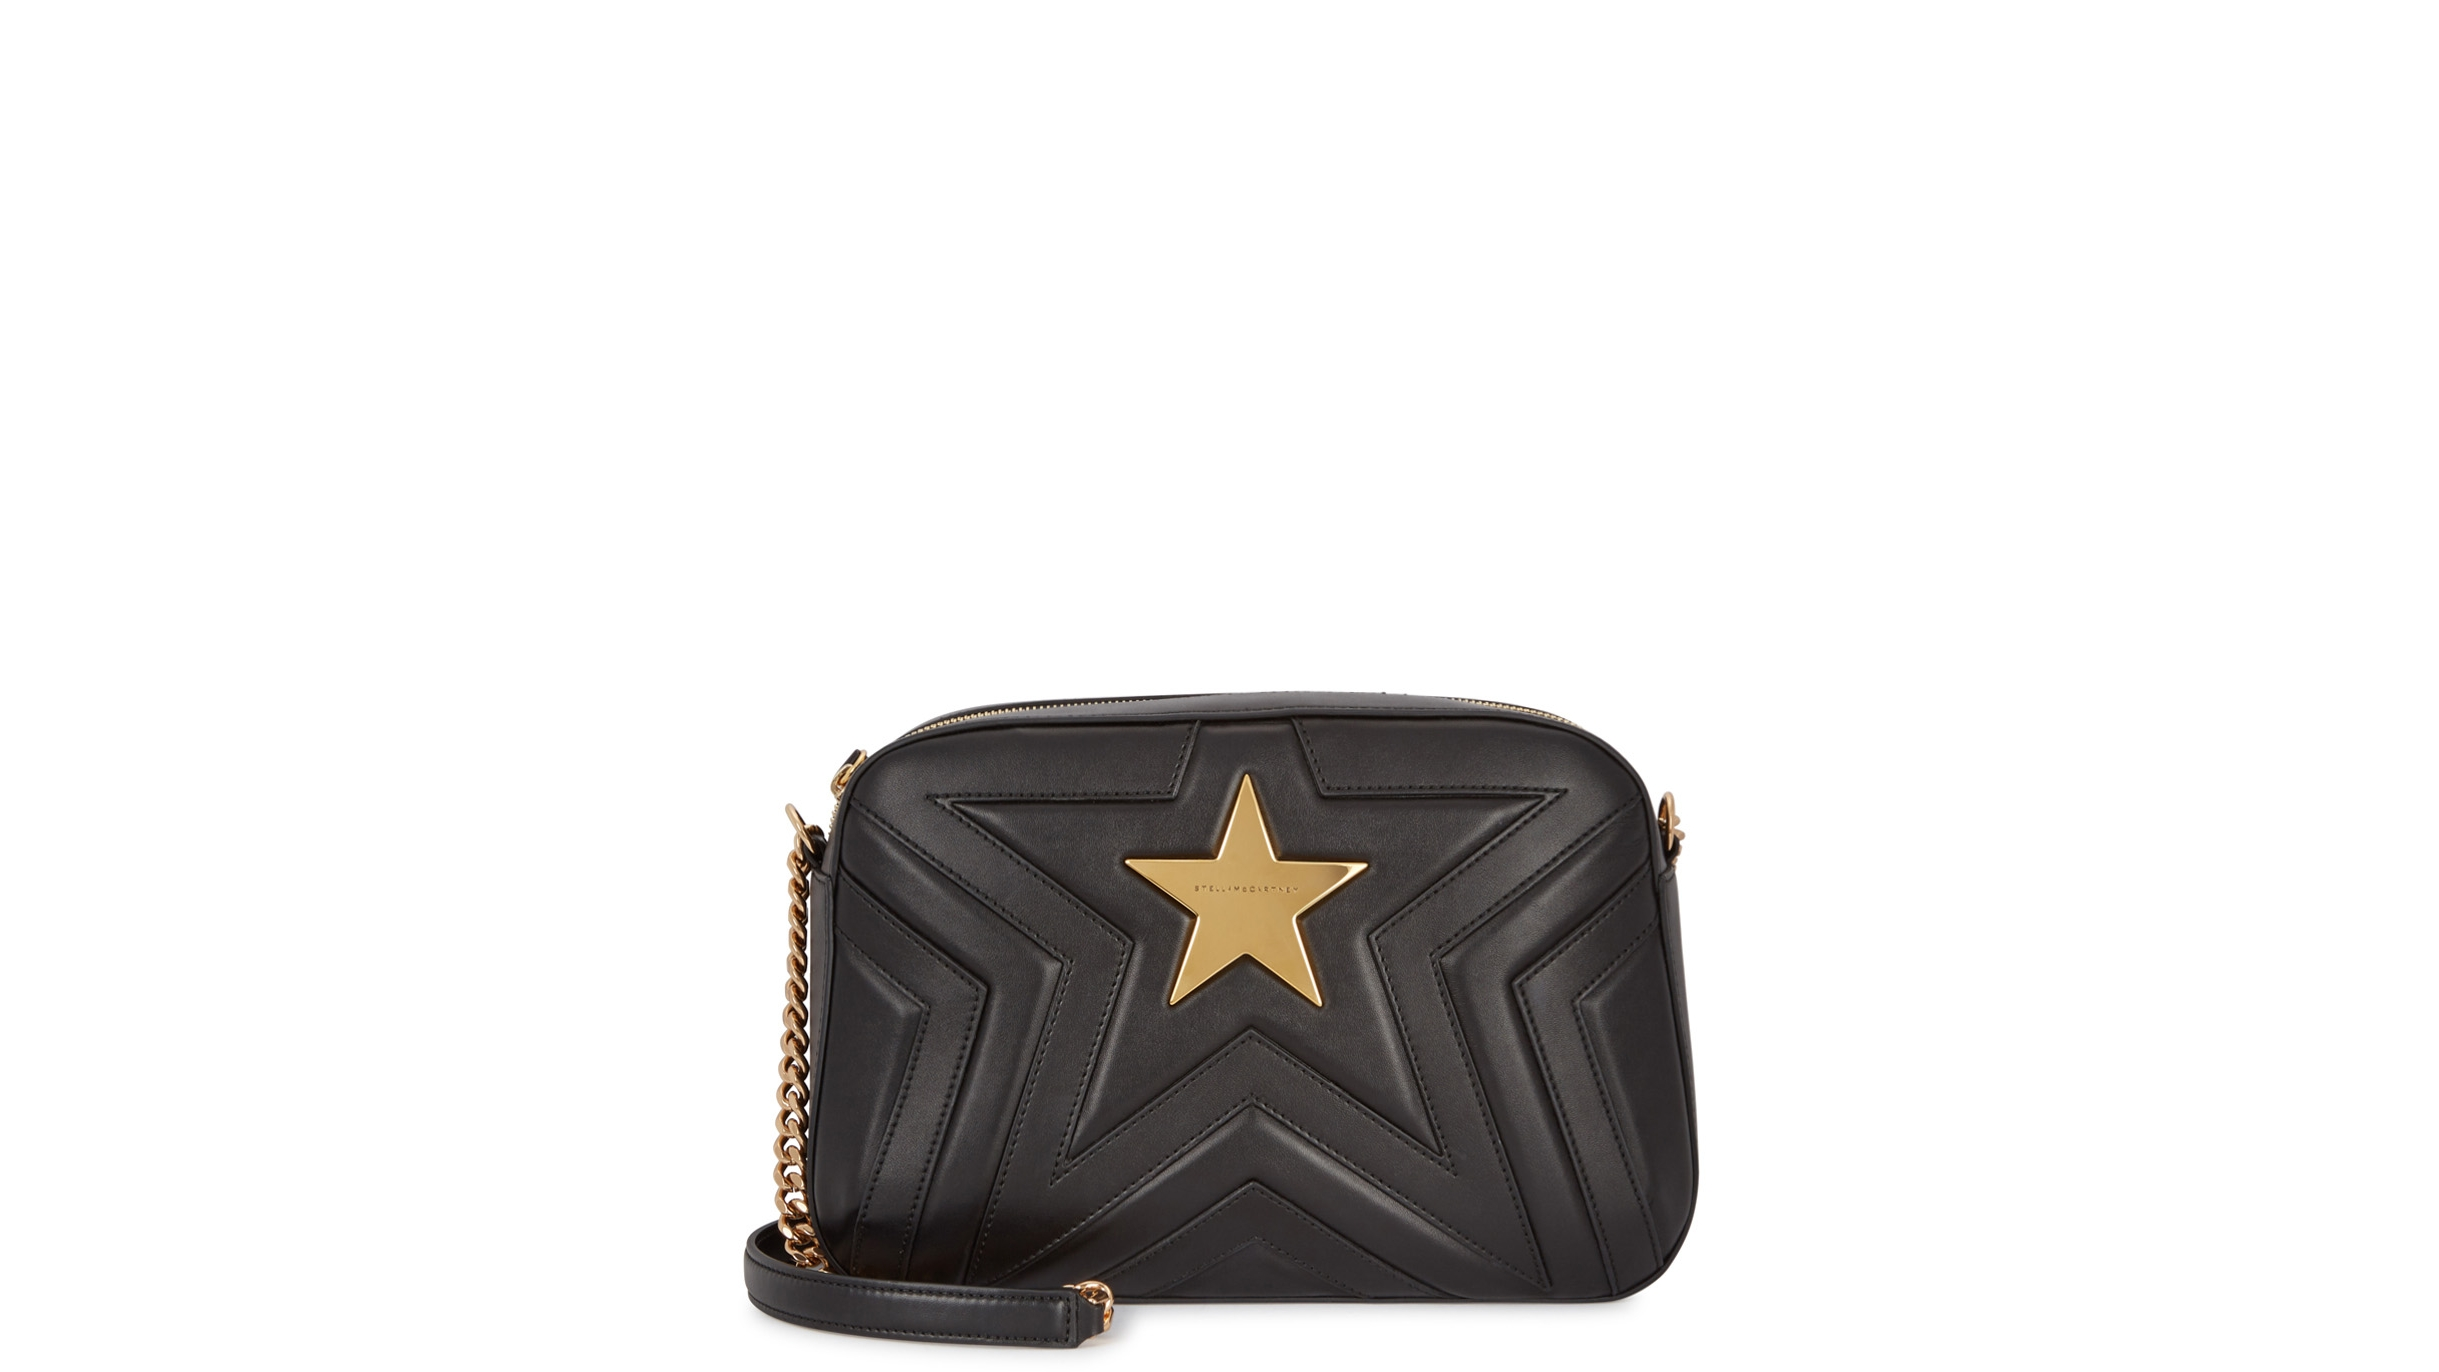 Stella McCartney Black star shoulder bag - Harvey Nichols 57ee5a45b1ab2